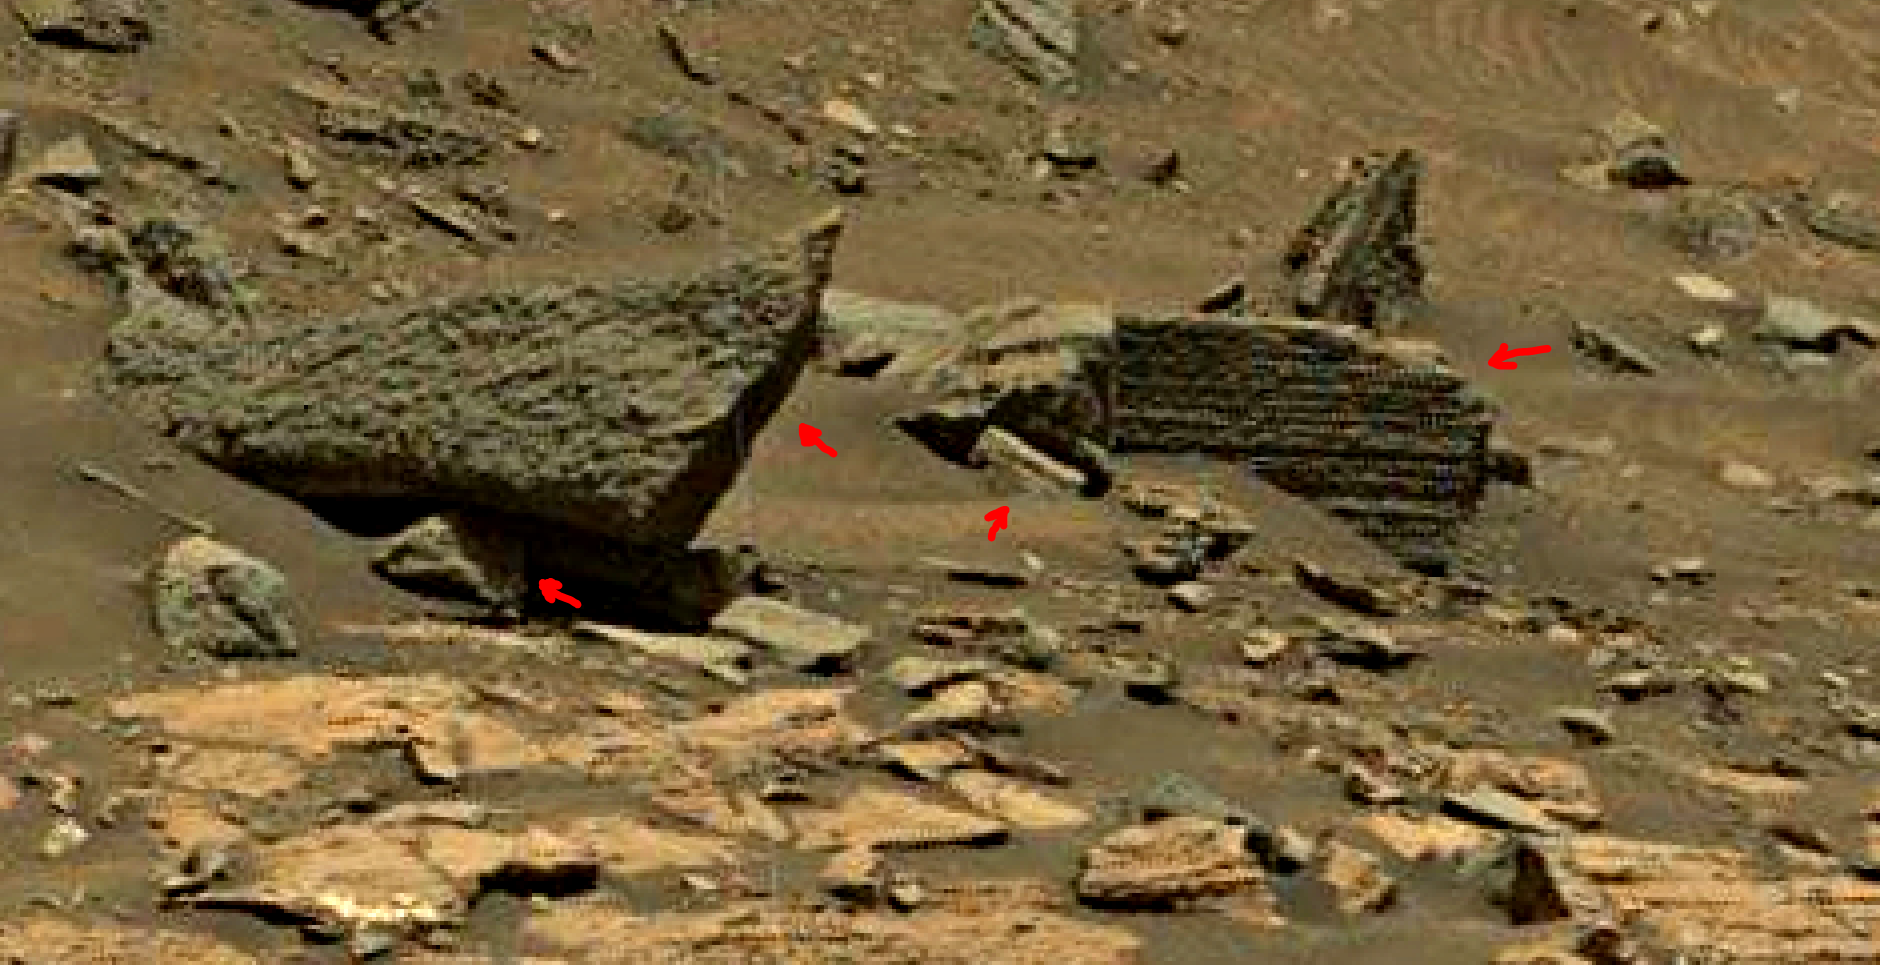 mars-sol-1455-anomaly-artifacts-8-was-life-on-mars